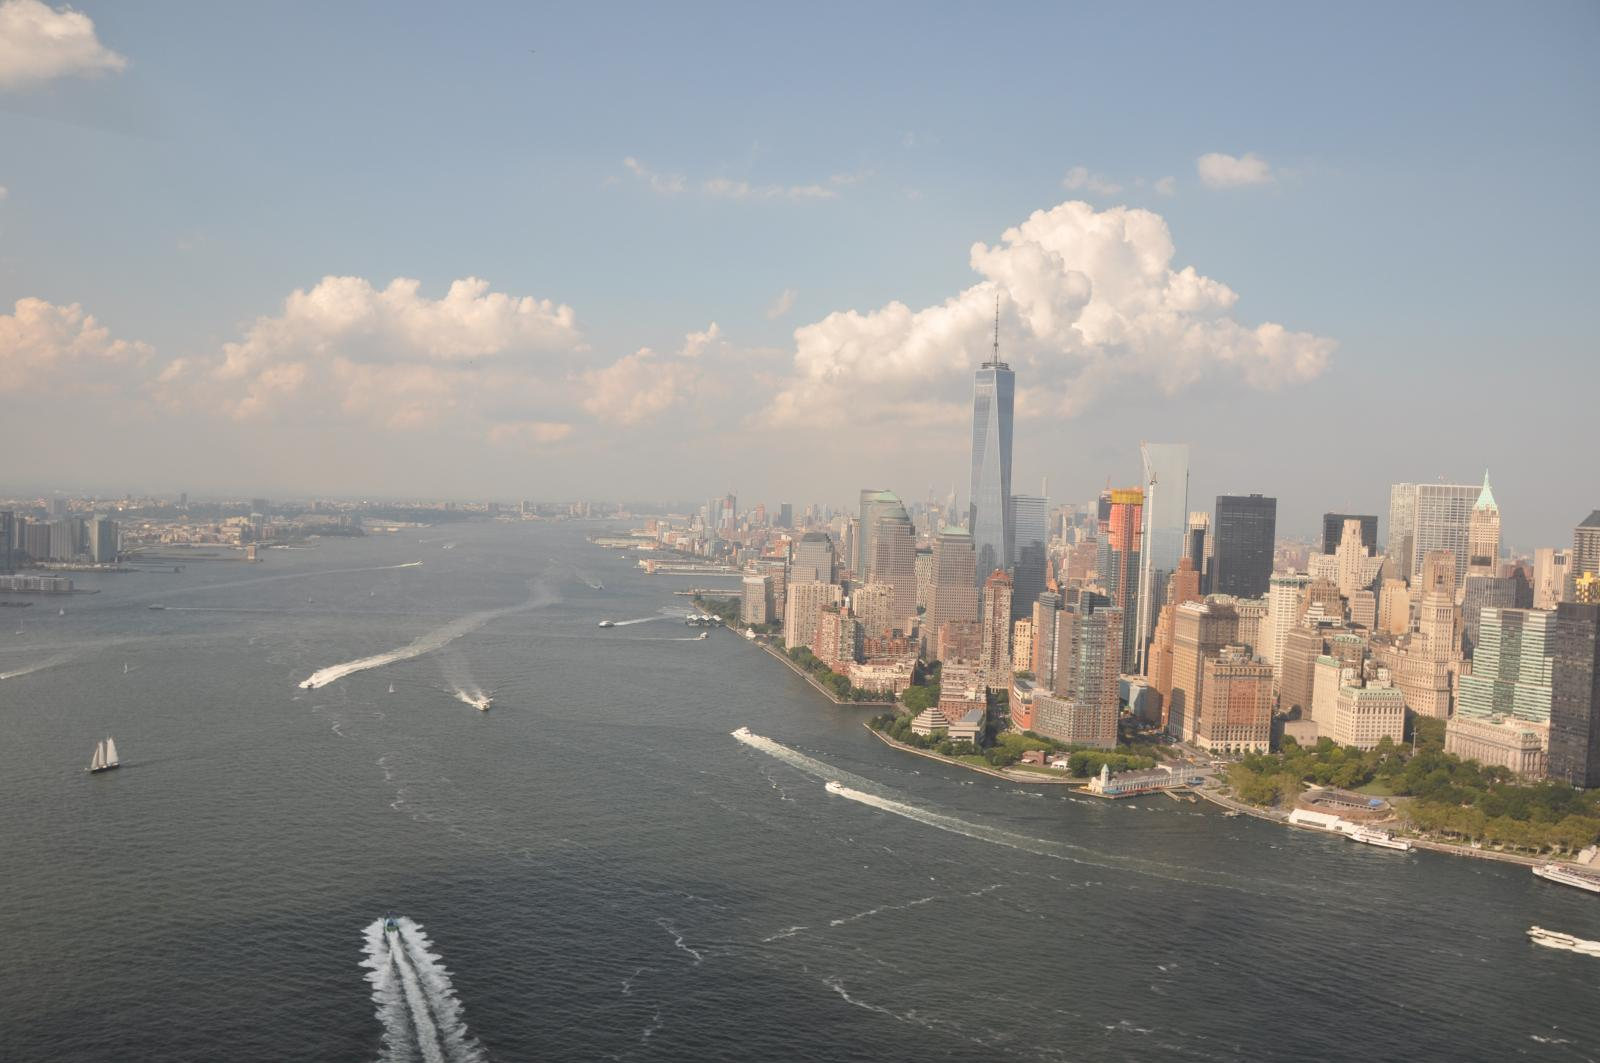 Hudson river from a helicopter tour